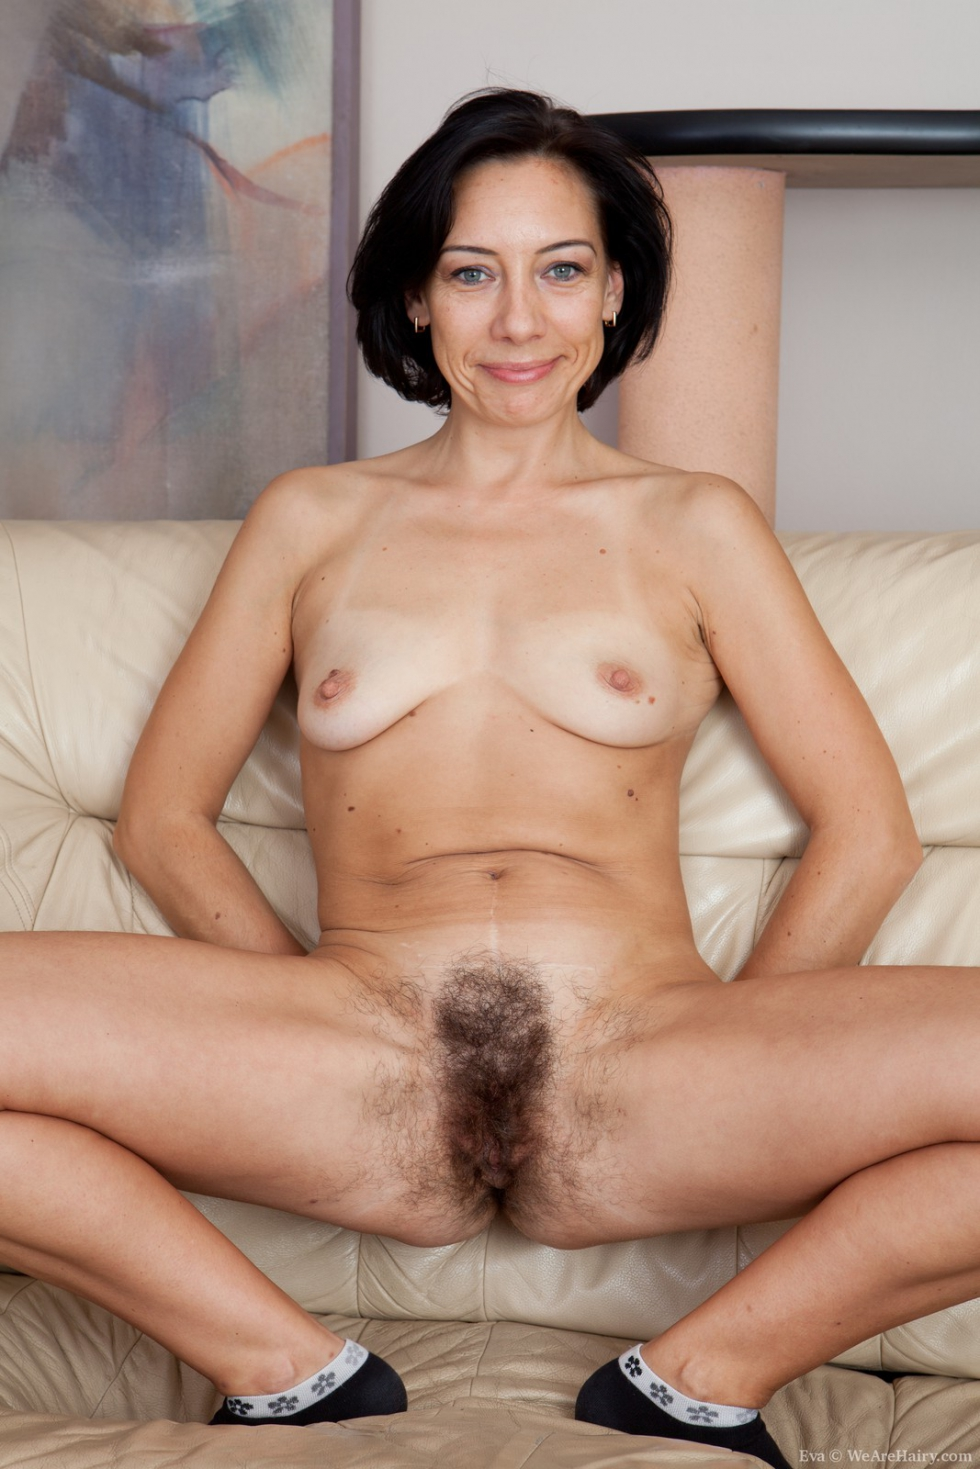 Remarkable, free hairy nude women video